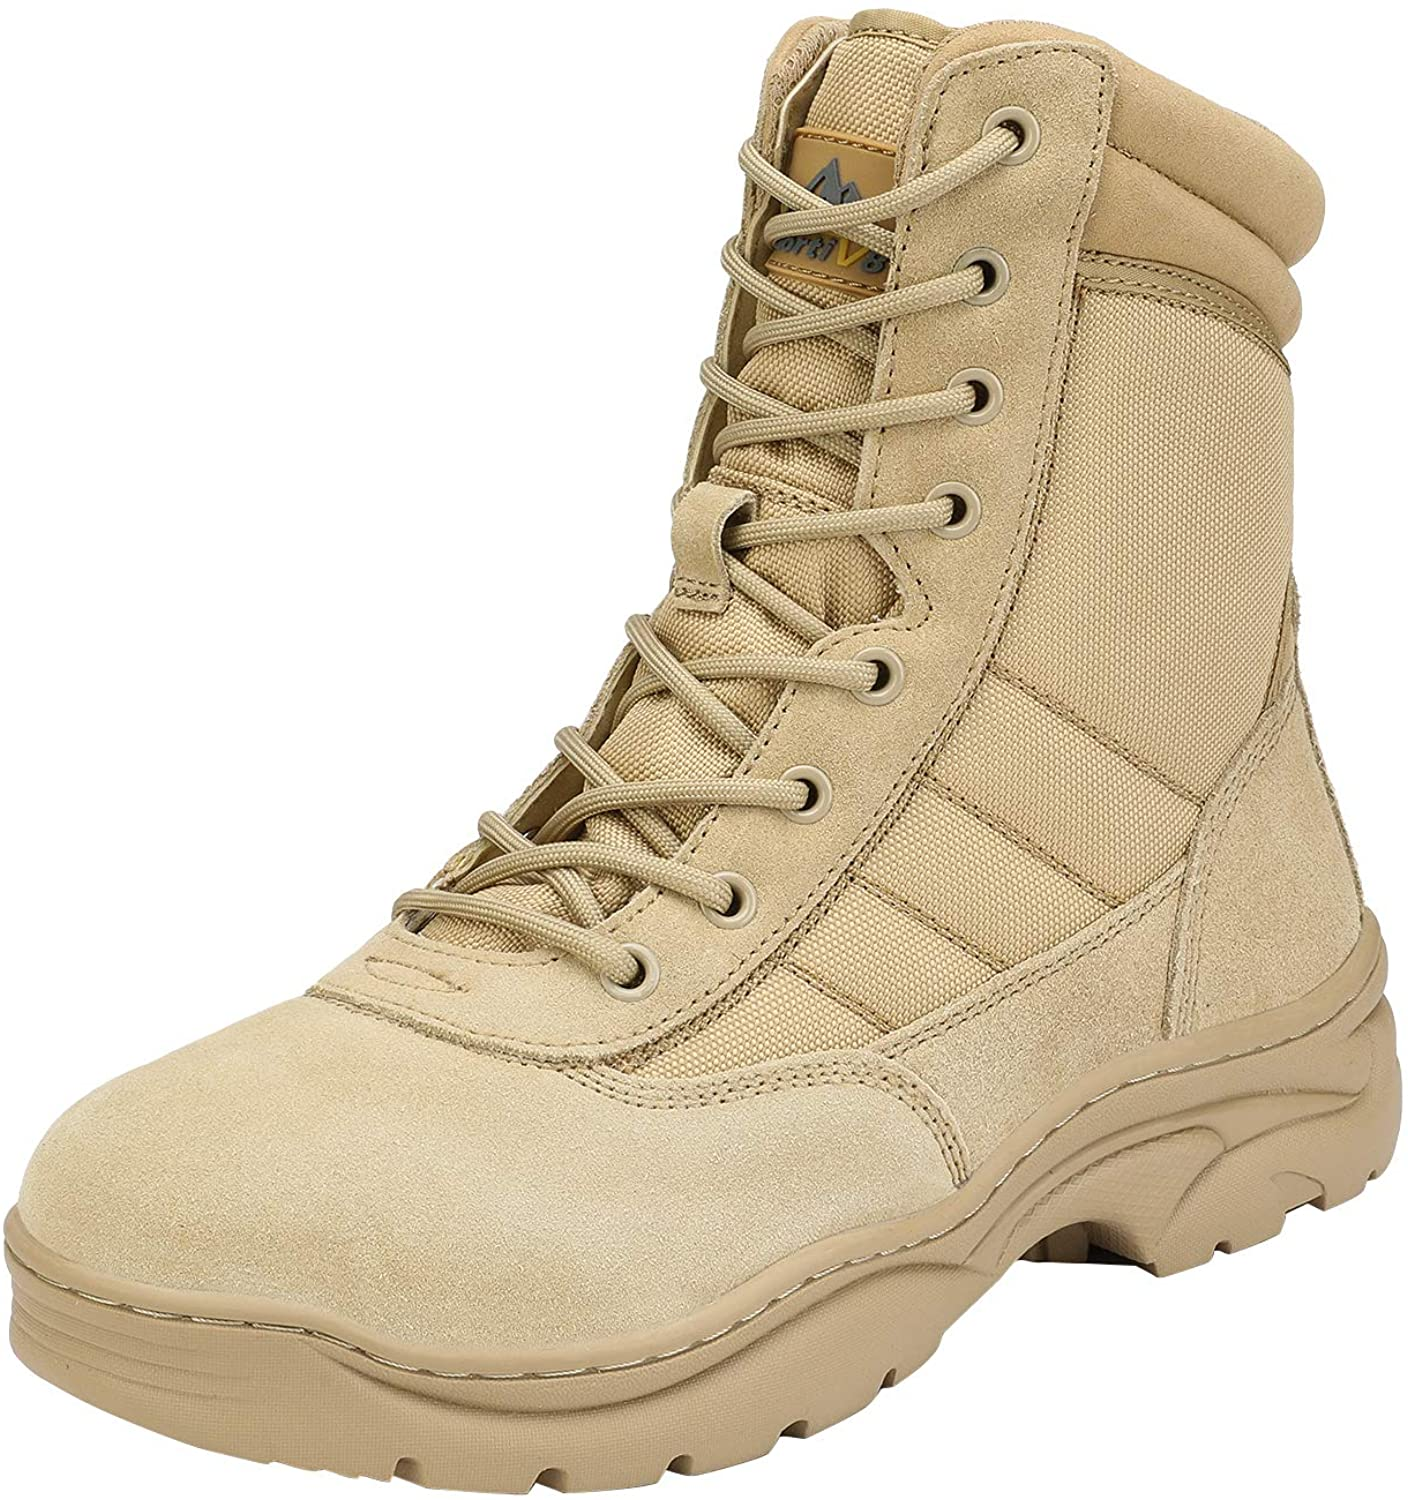 NORTIV 8 Men's Military Tactical Side Zipper Work Cheap sale Leather Fixed price for sale Boots